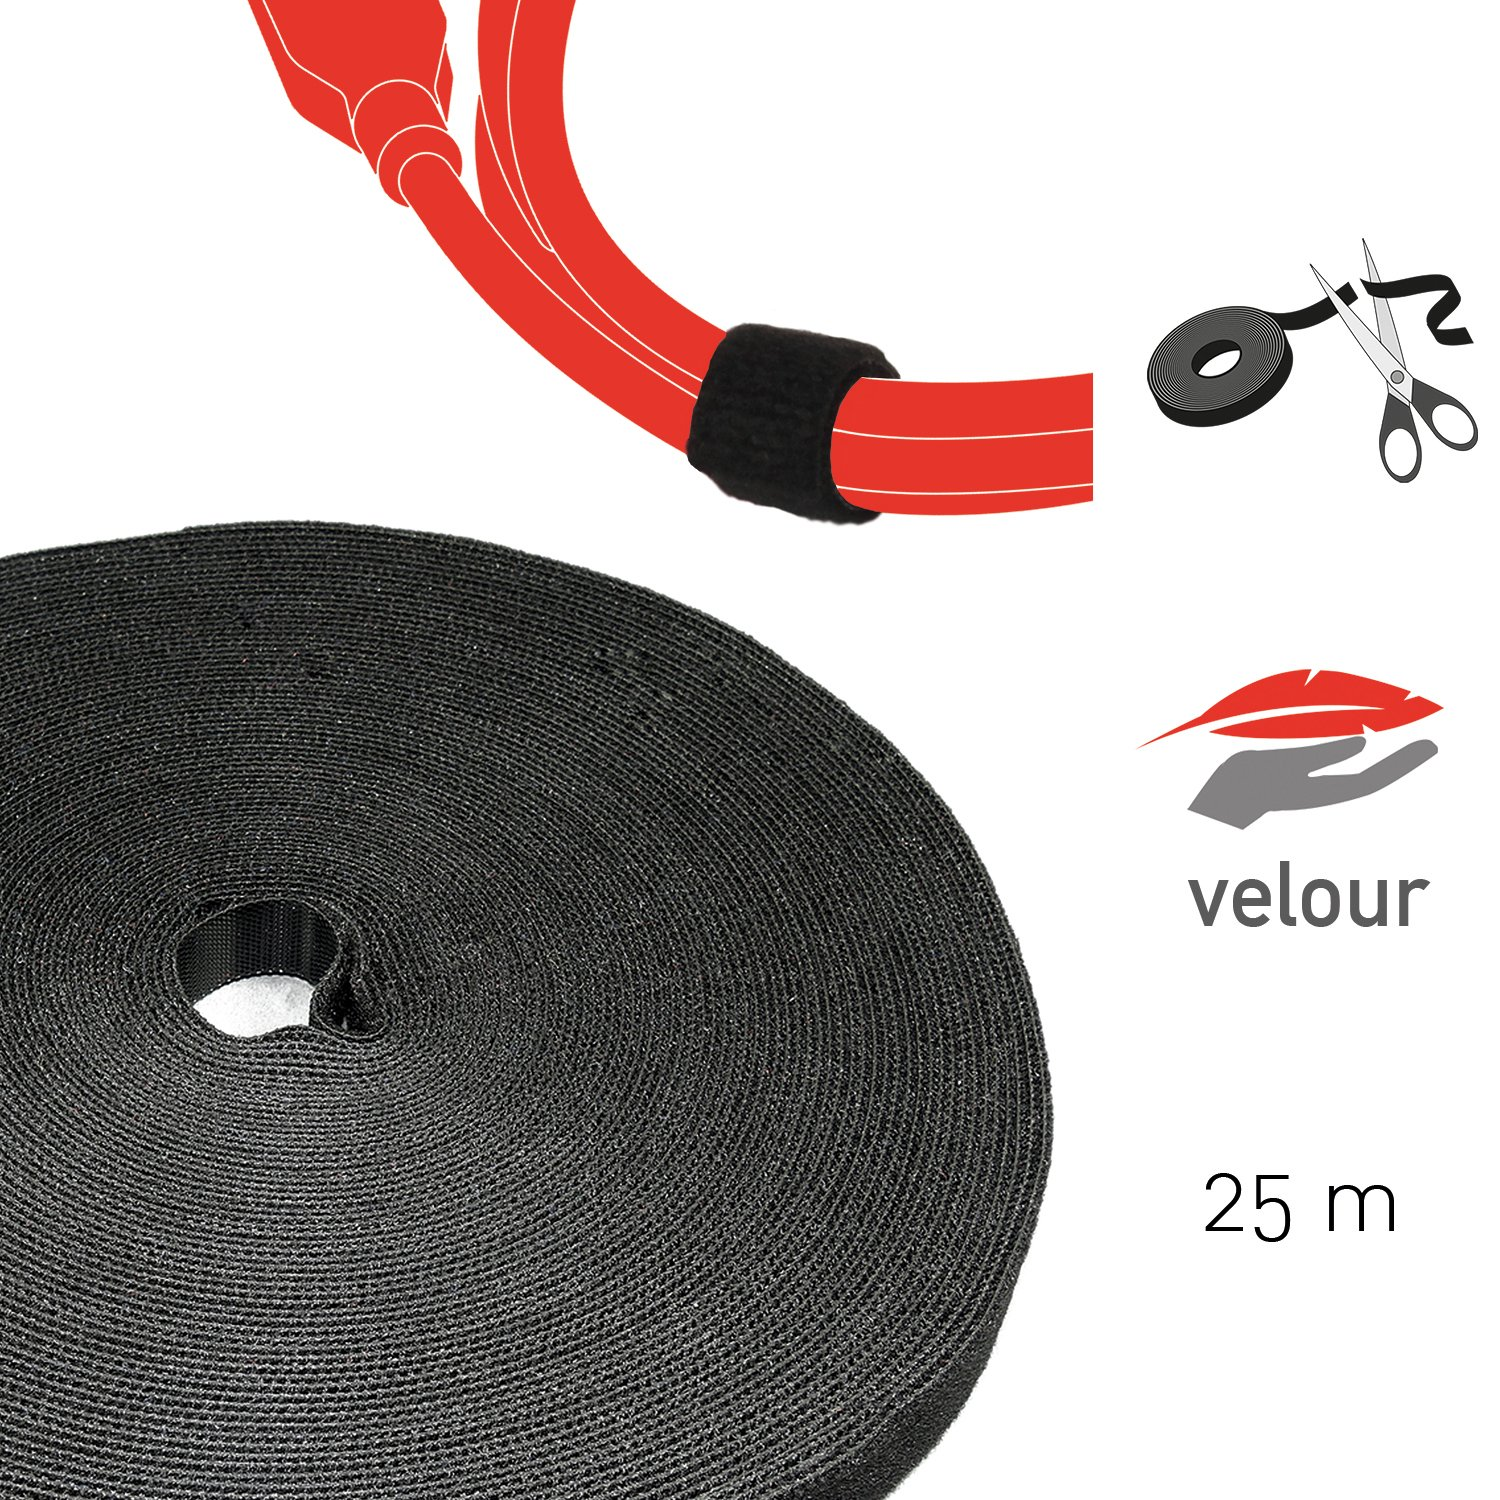 Label-the-cable Klettbandrolle doppelseitig (Haken & Flausch ...